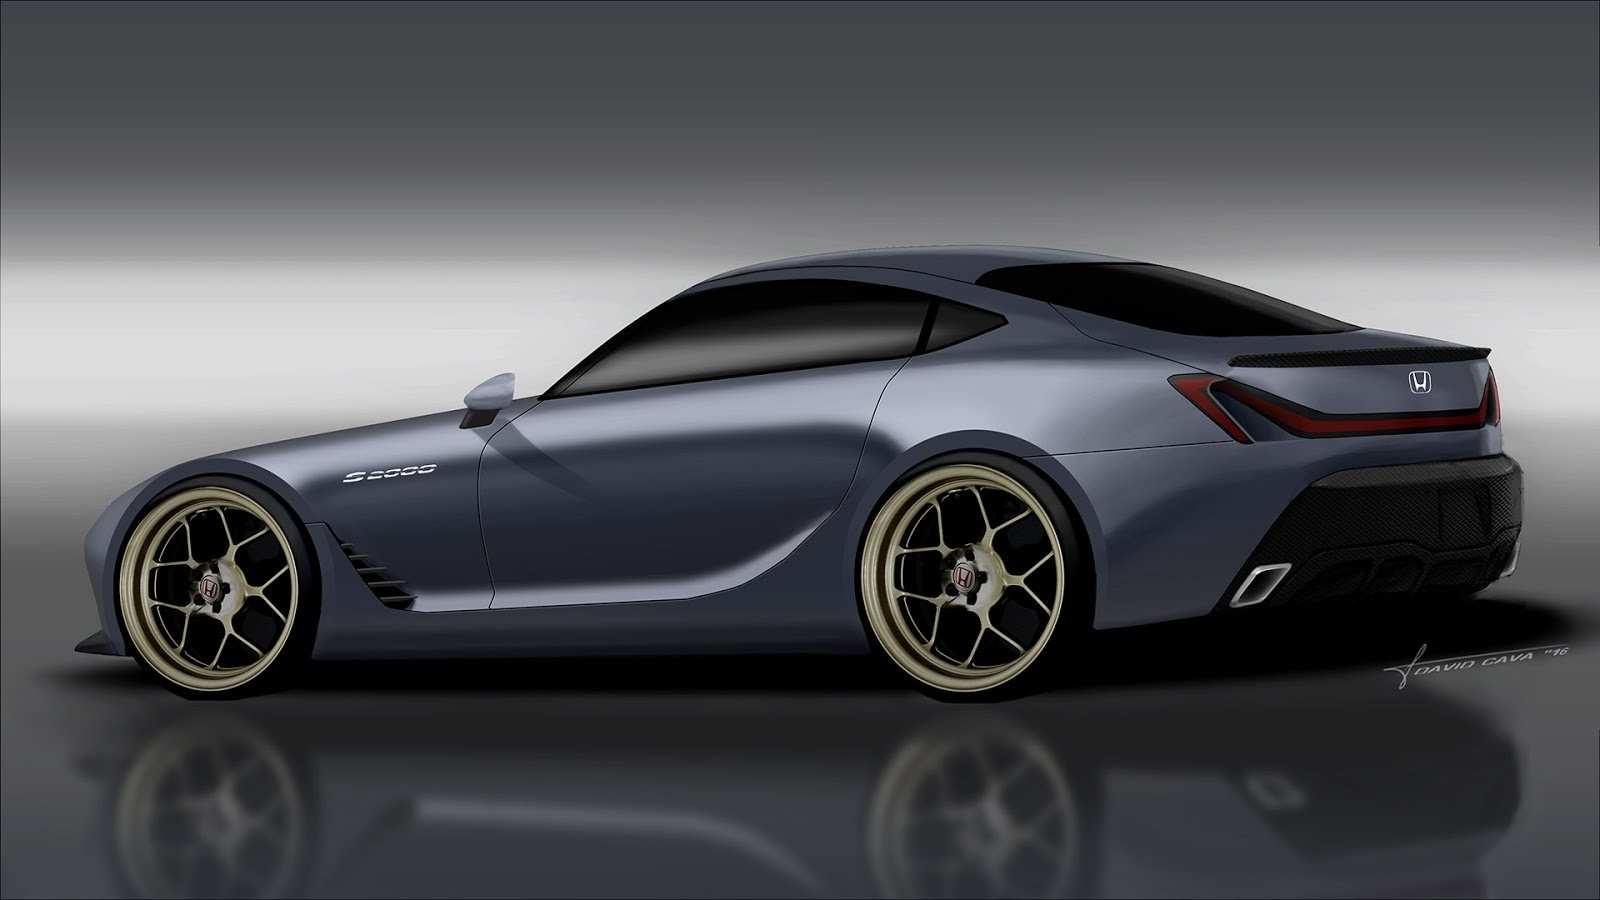 63 The Best 2020 The Honda S2000 Review